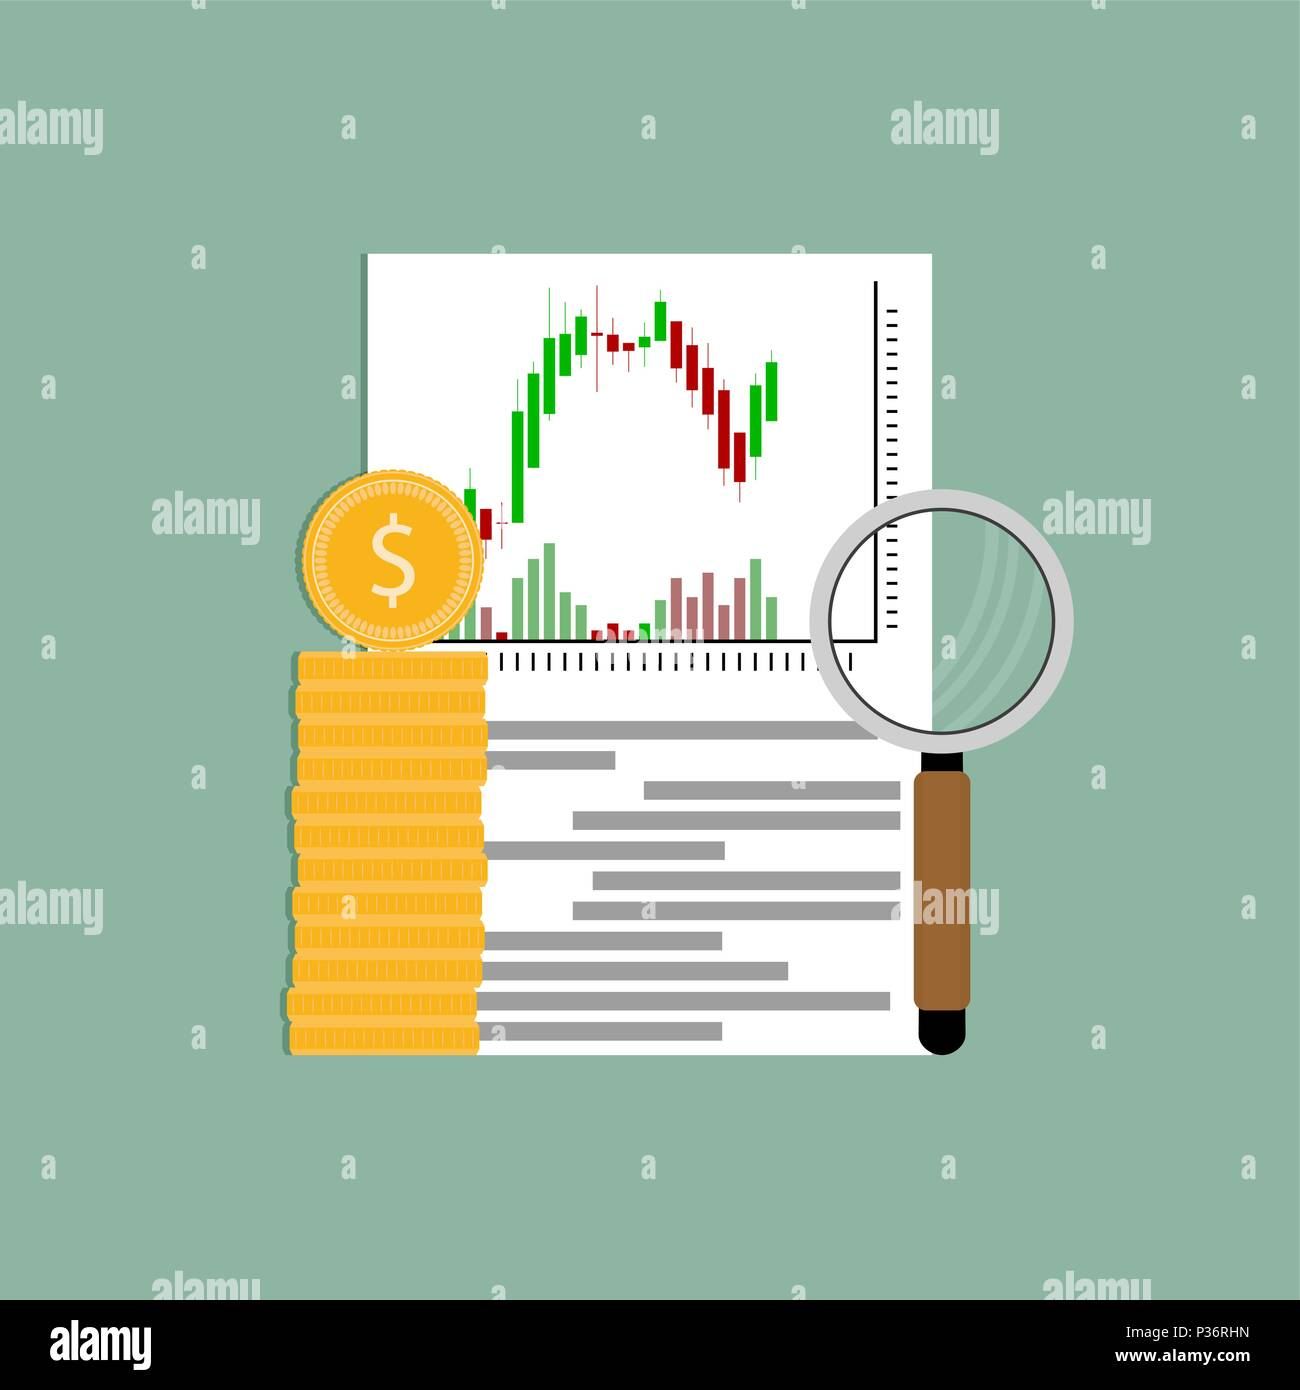 Finance Market: Exchange Analysis Financial Candlestick Chart. Vector